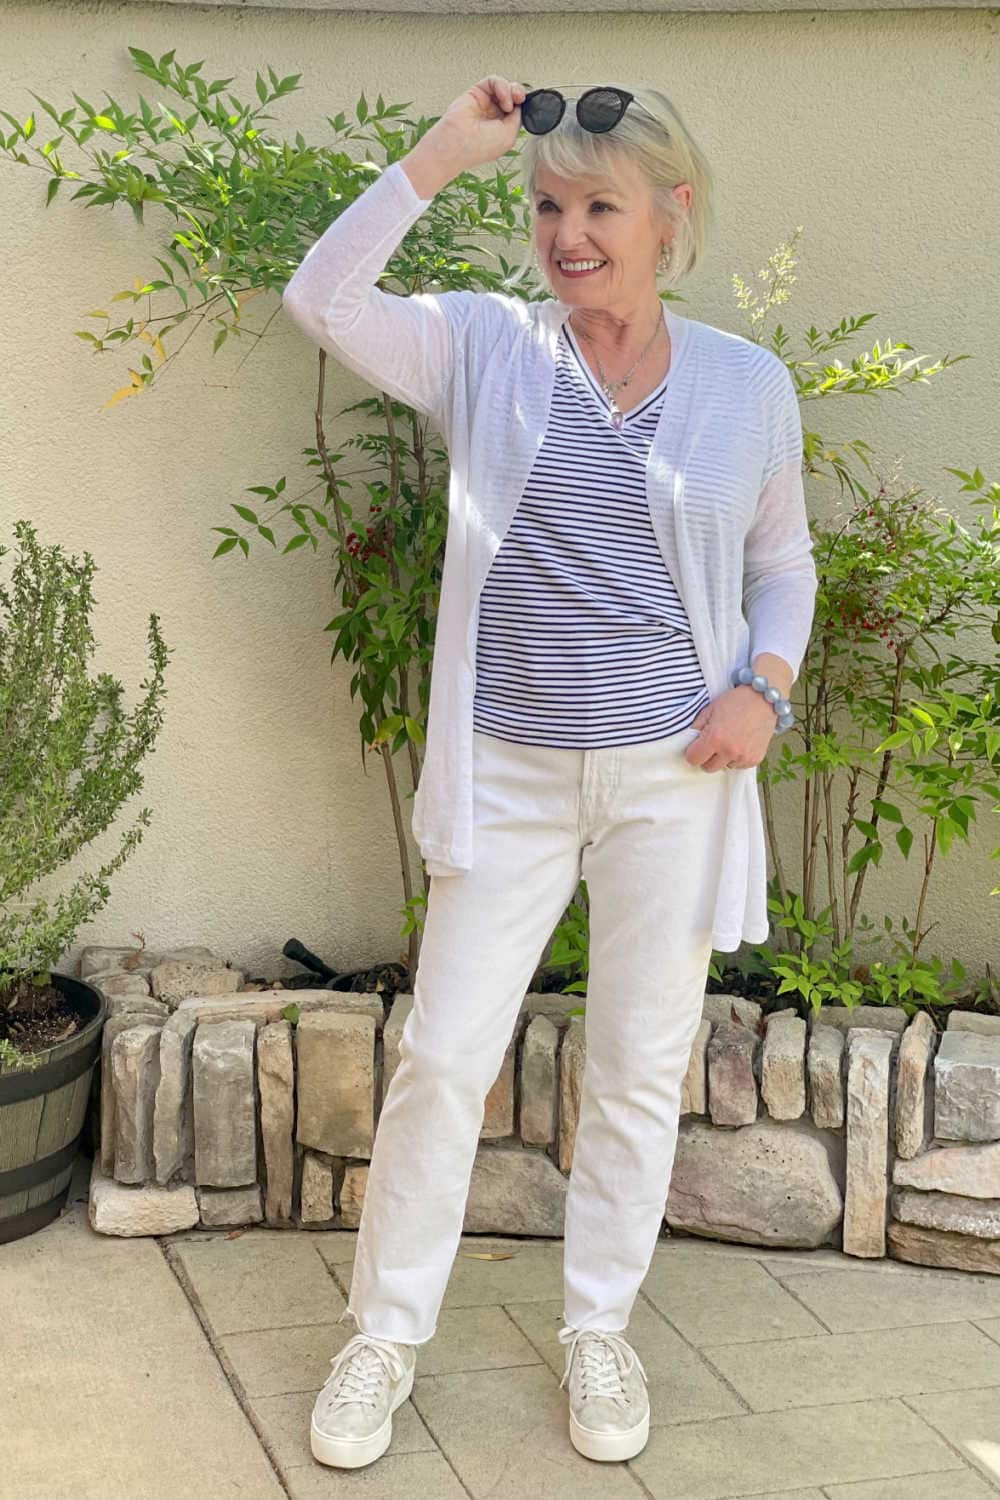 woman raising sunglasses to look under wearing white jeans and striped tee